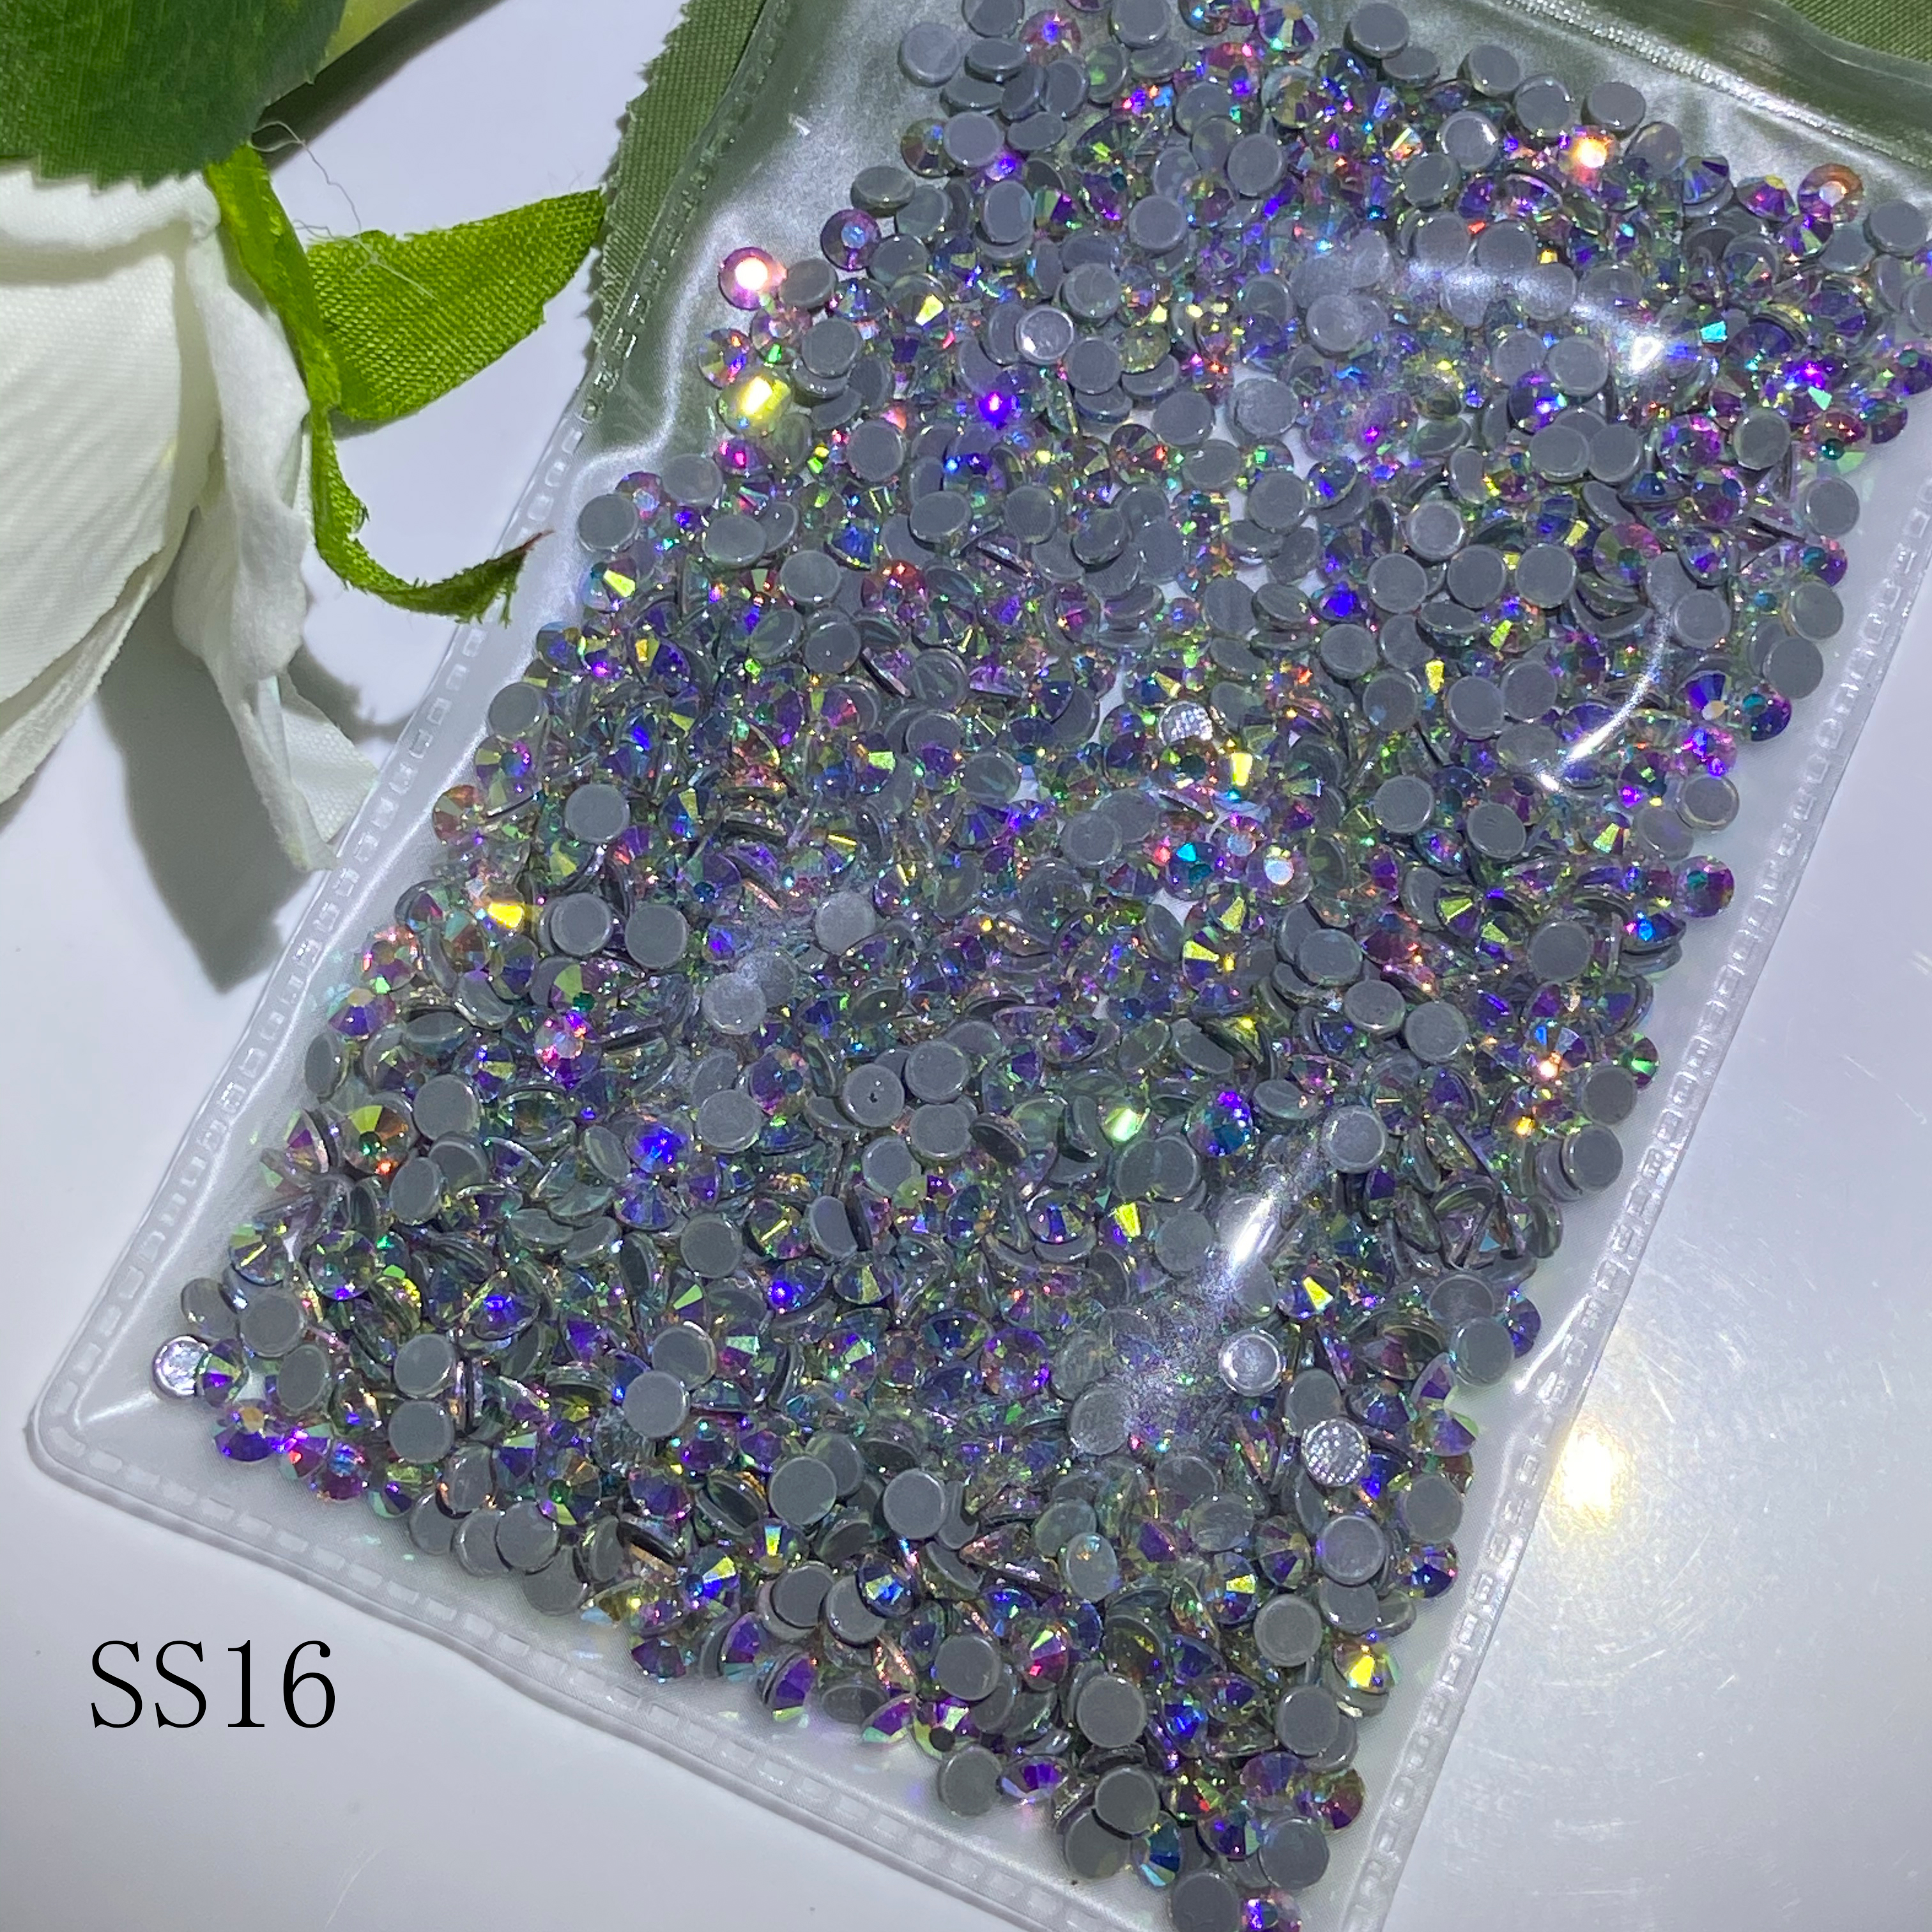 10 bags AB Color SS16 1440pcs/bag DMC Hot Fix Rhinestone Crystal Flatback Loose Strass Rhinestone for clothes bags accessaries